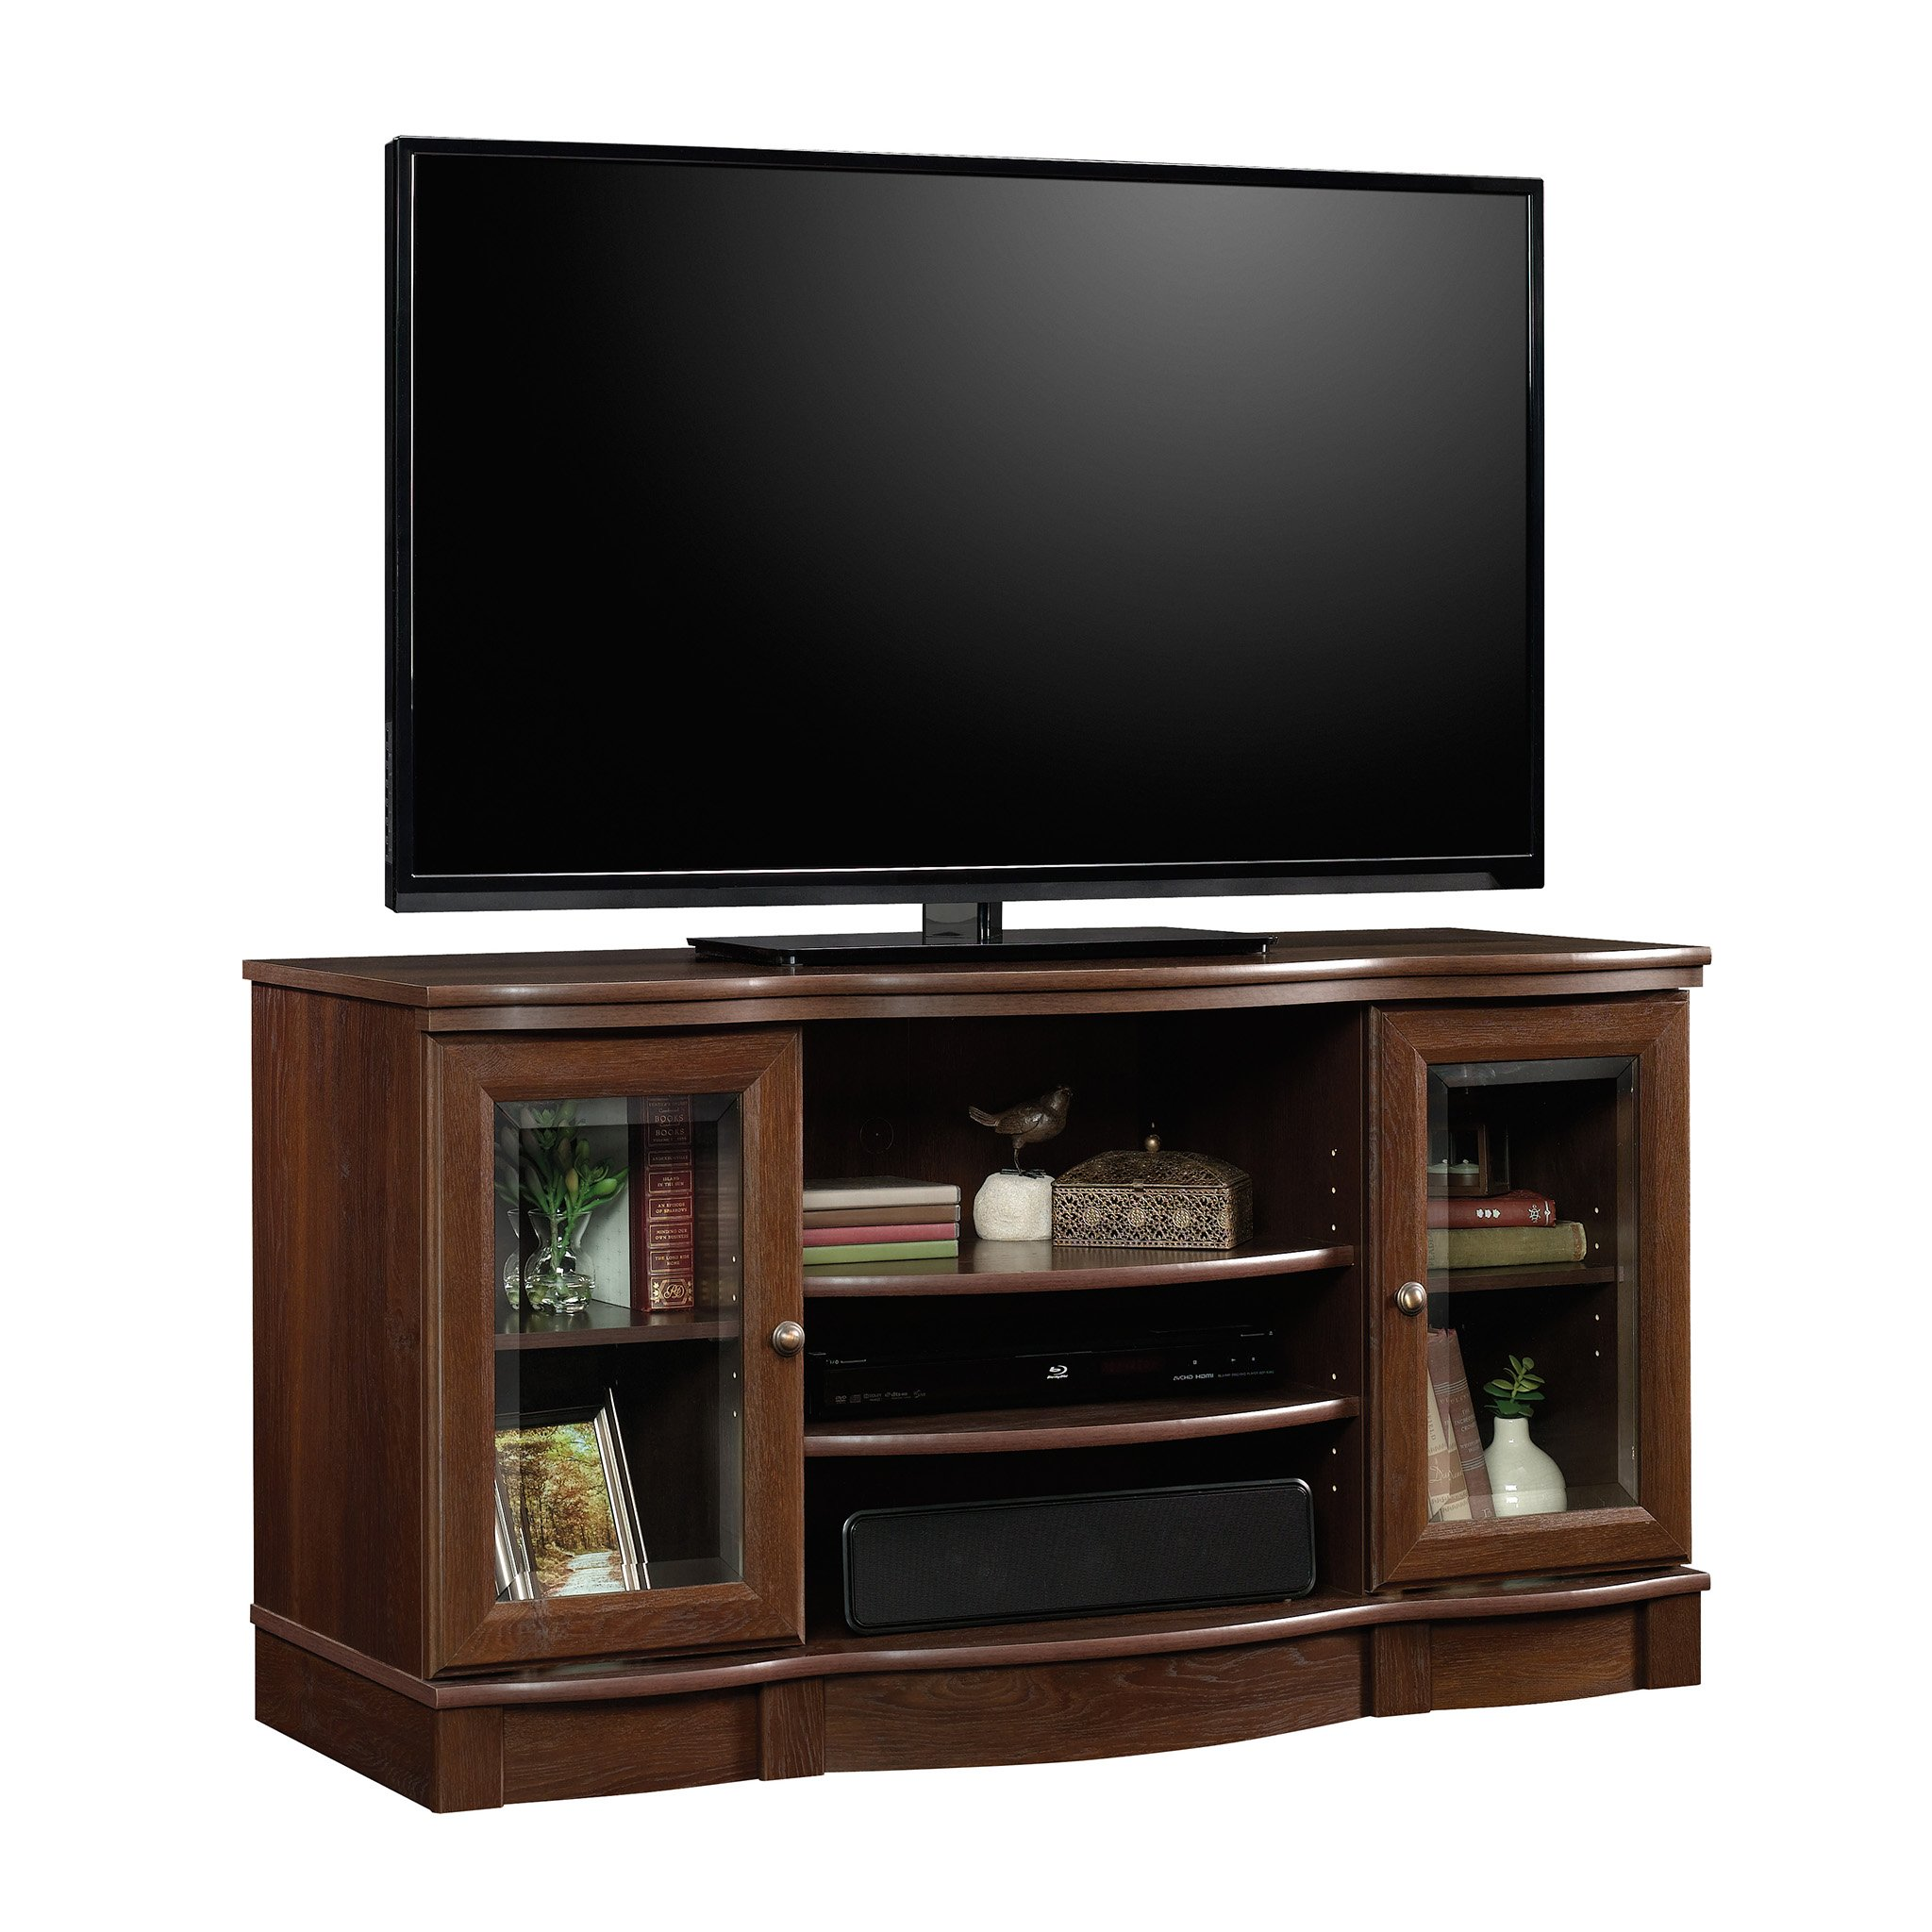 Sauder 419963 Regent Place TV Stand, For TV's up to 50'',  Euro Oak finish